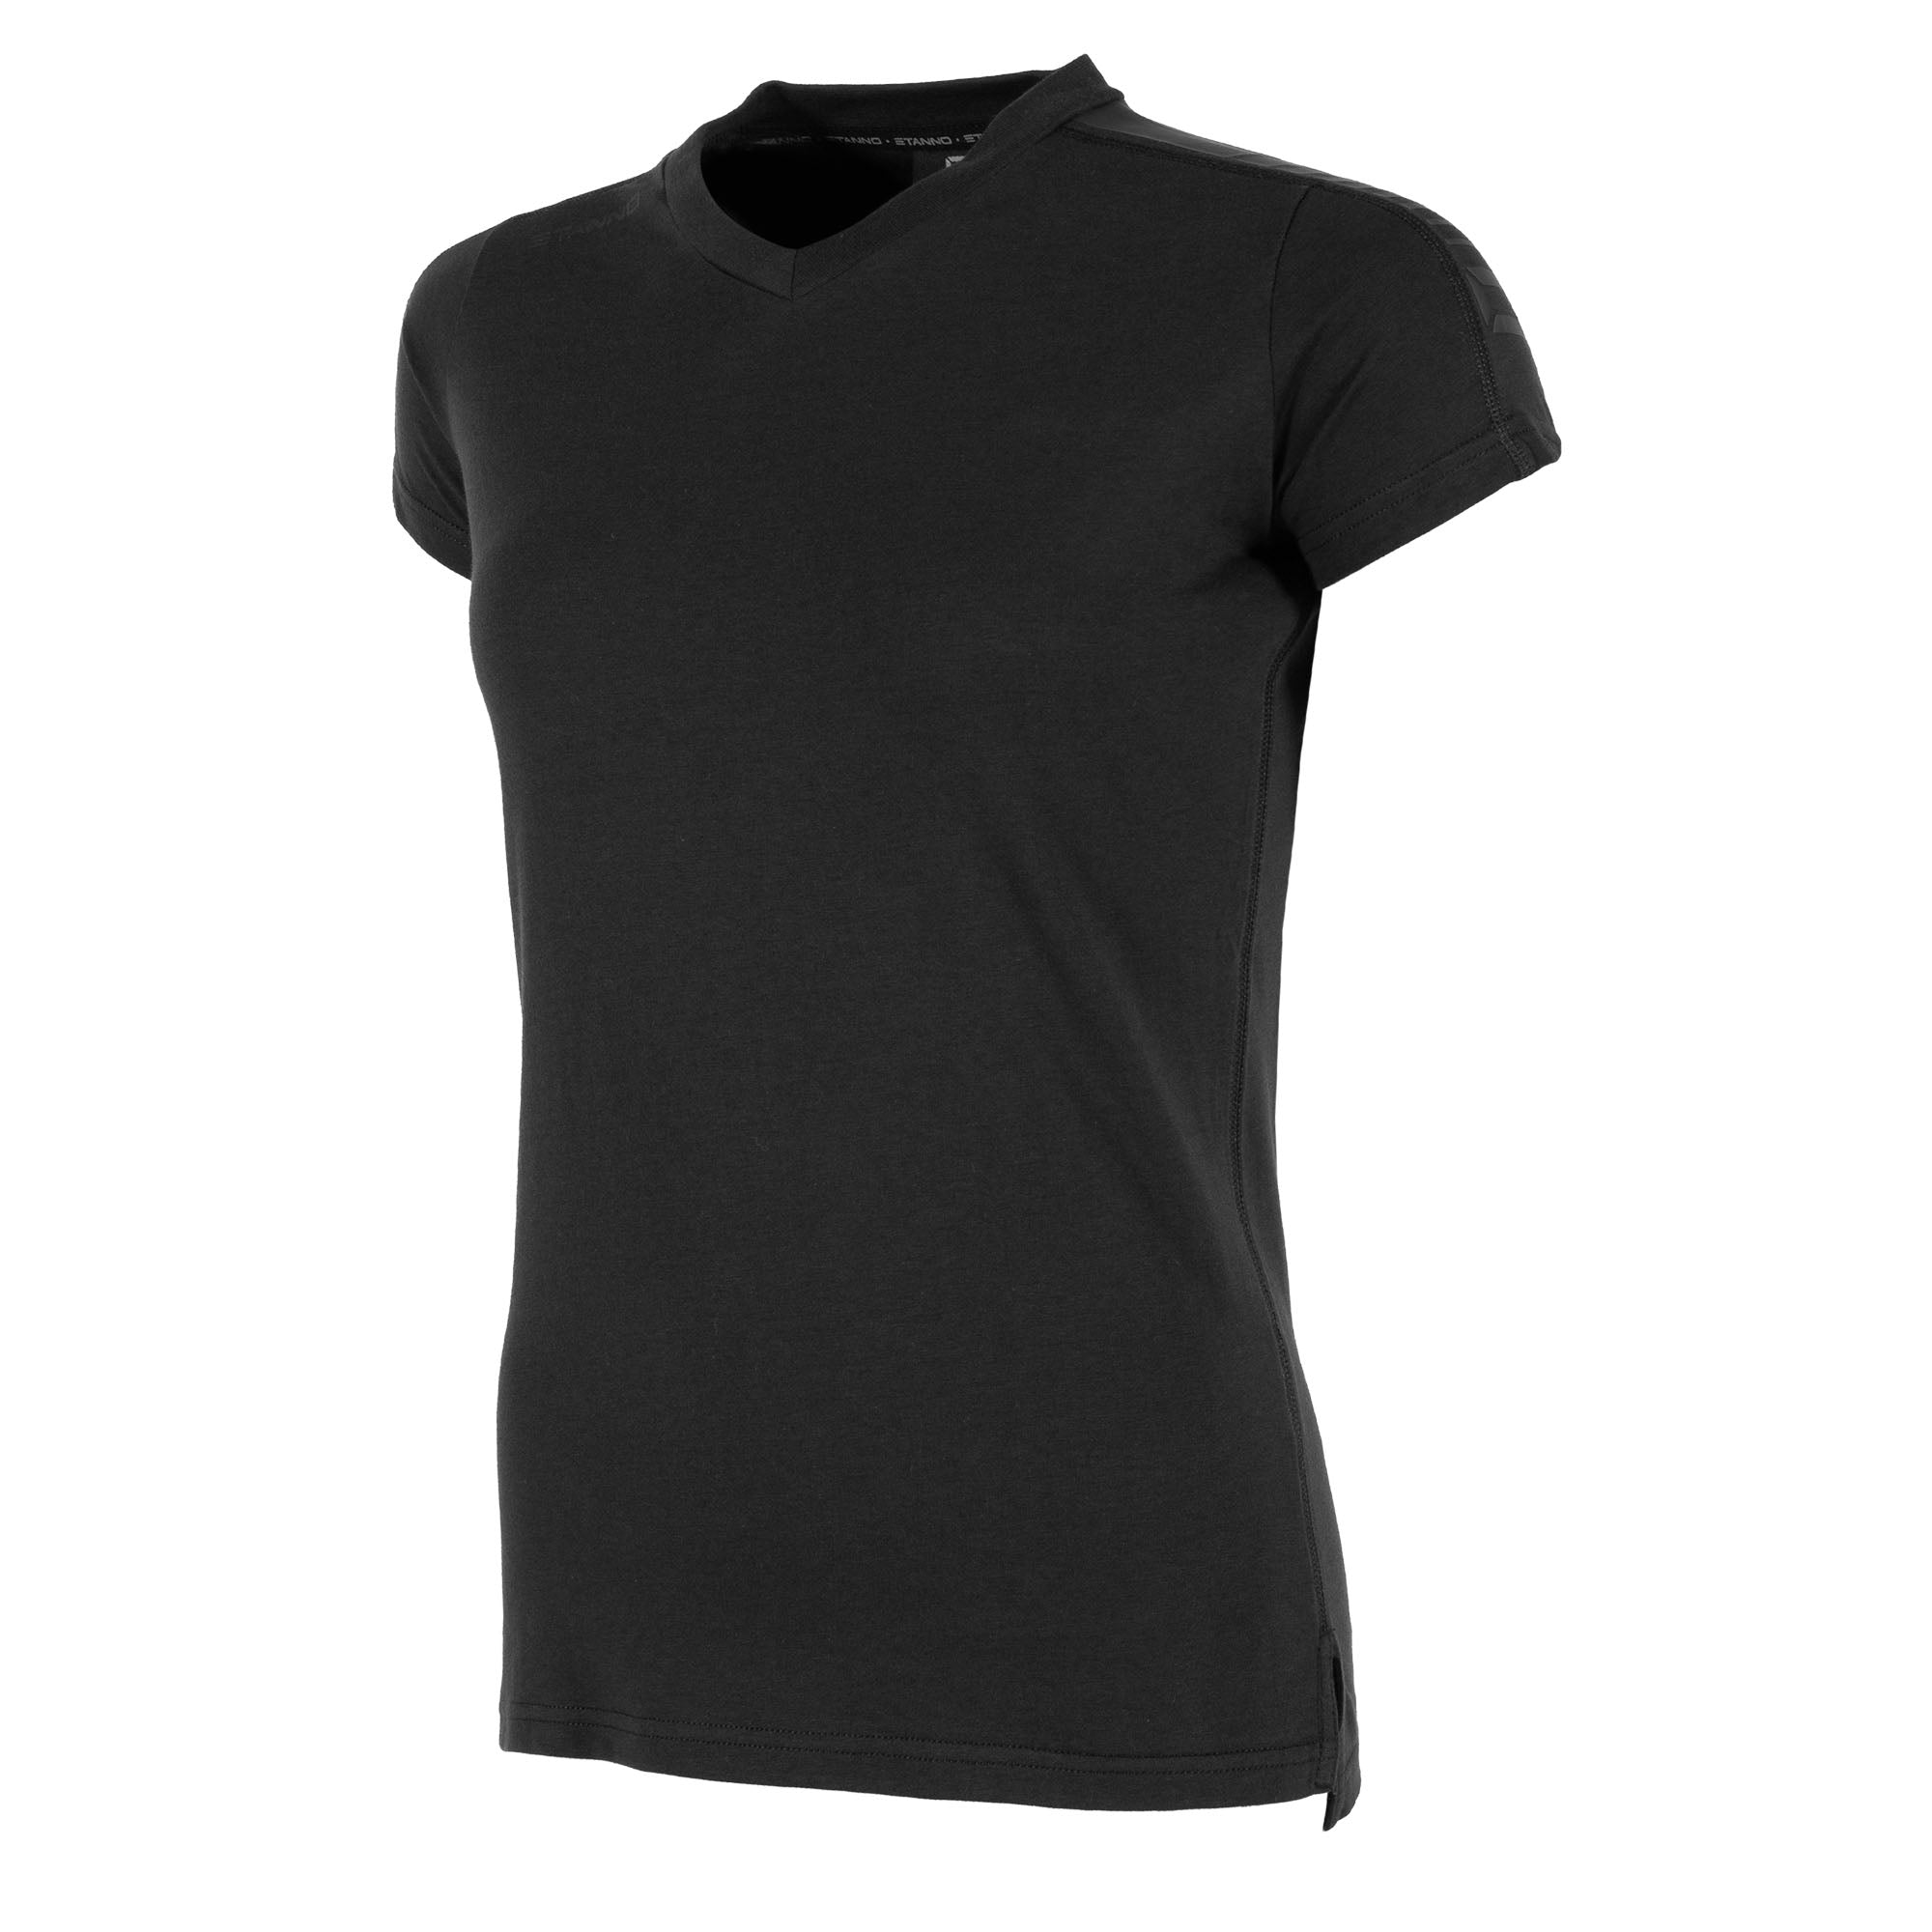 Front view of black Stanno Ease T-Shirt Ladies with v-neck, side slit design, and subtle shoulder print.